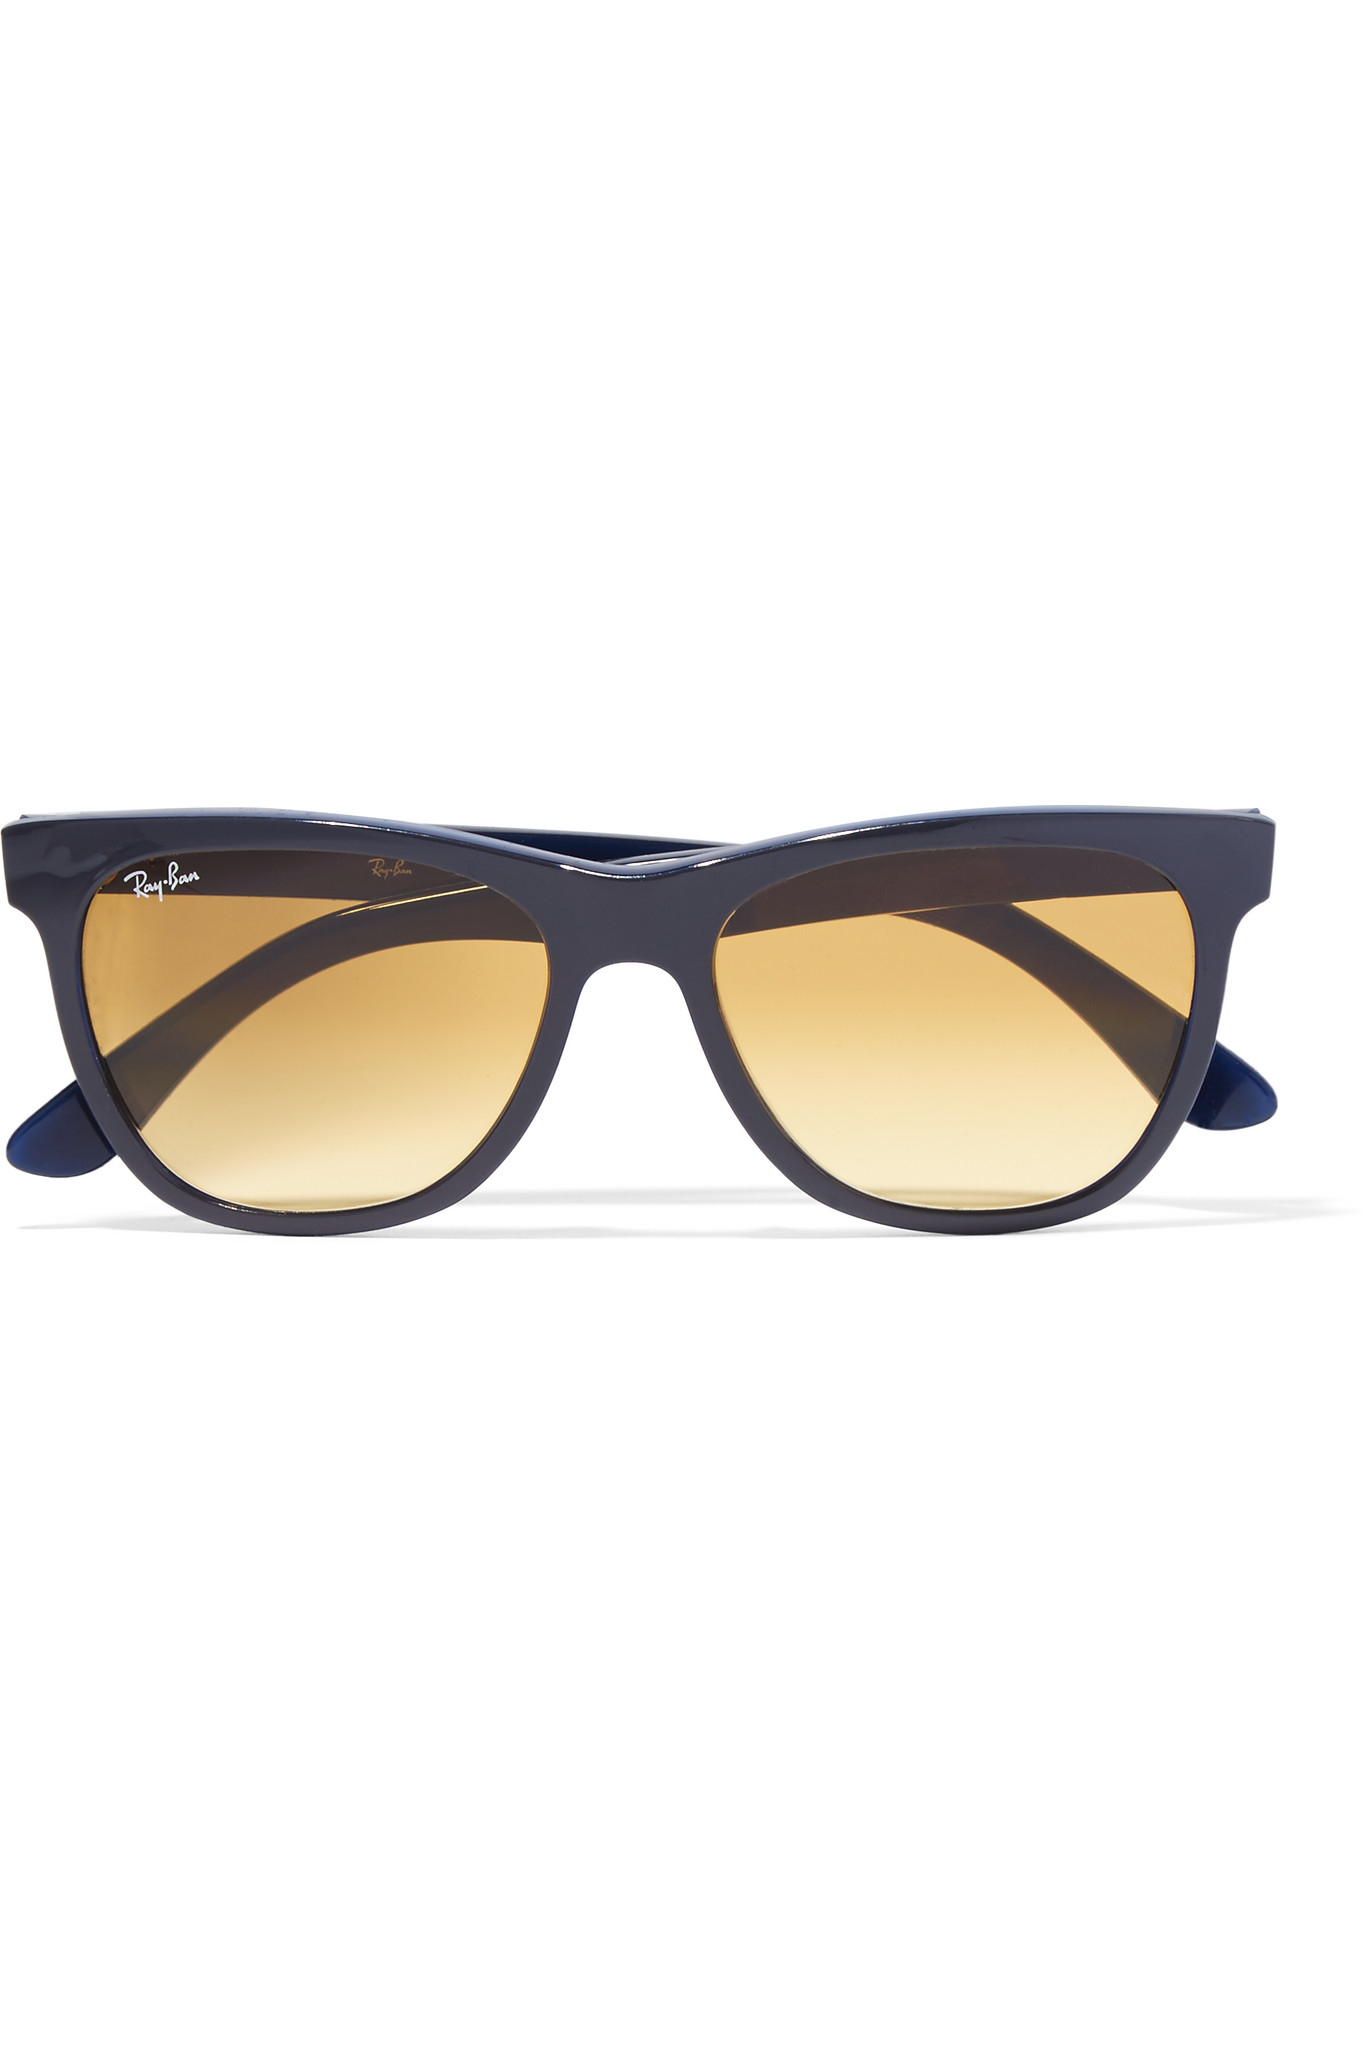 Ray-ban D-frame Acetate Sunglasses in Gray Lyst